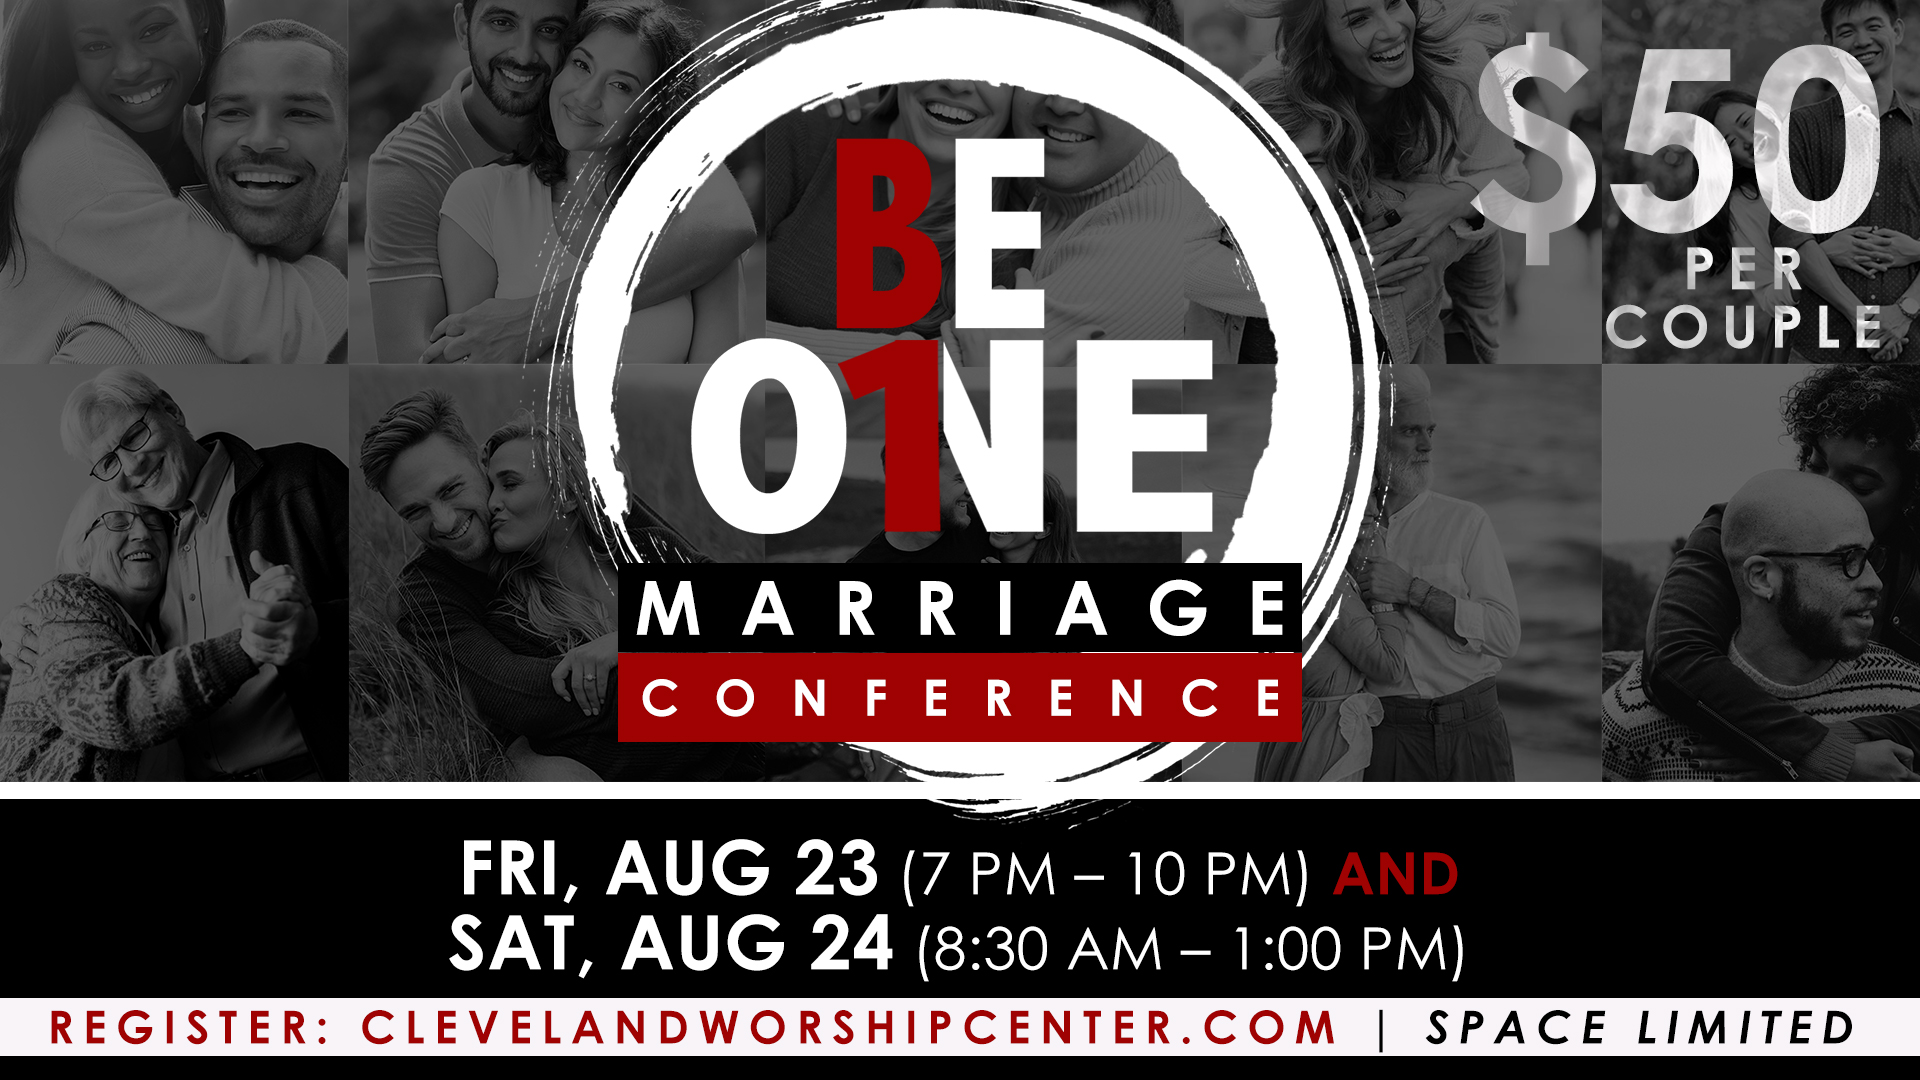 BeOne Marriage Conference 2019 logo